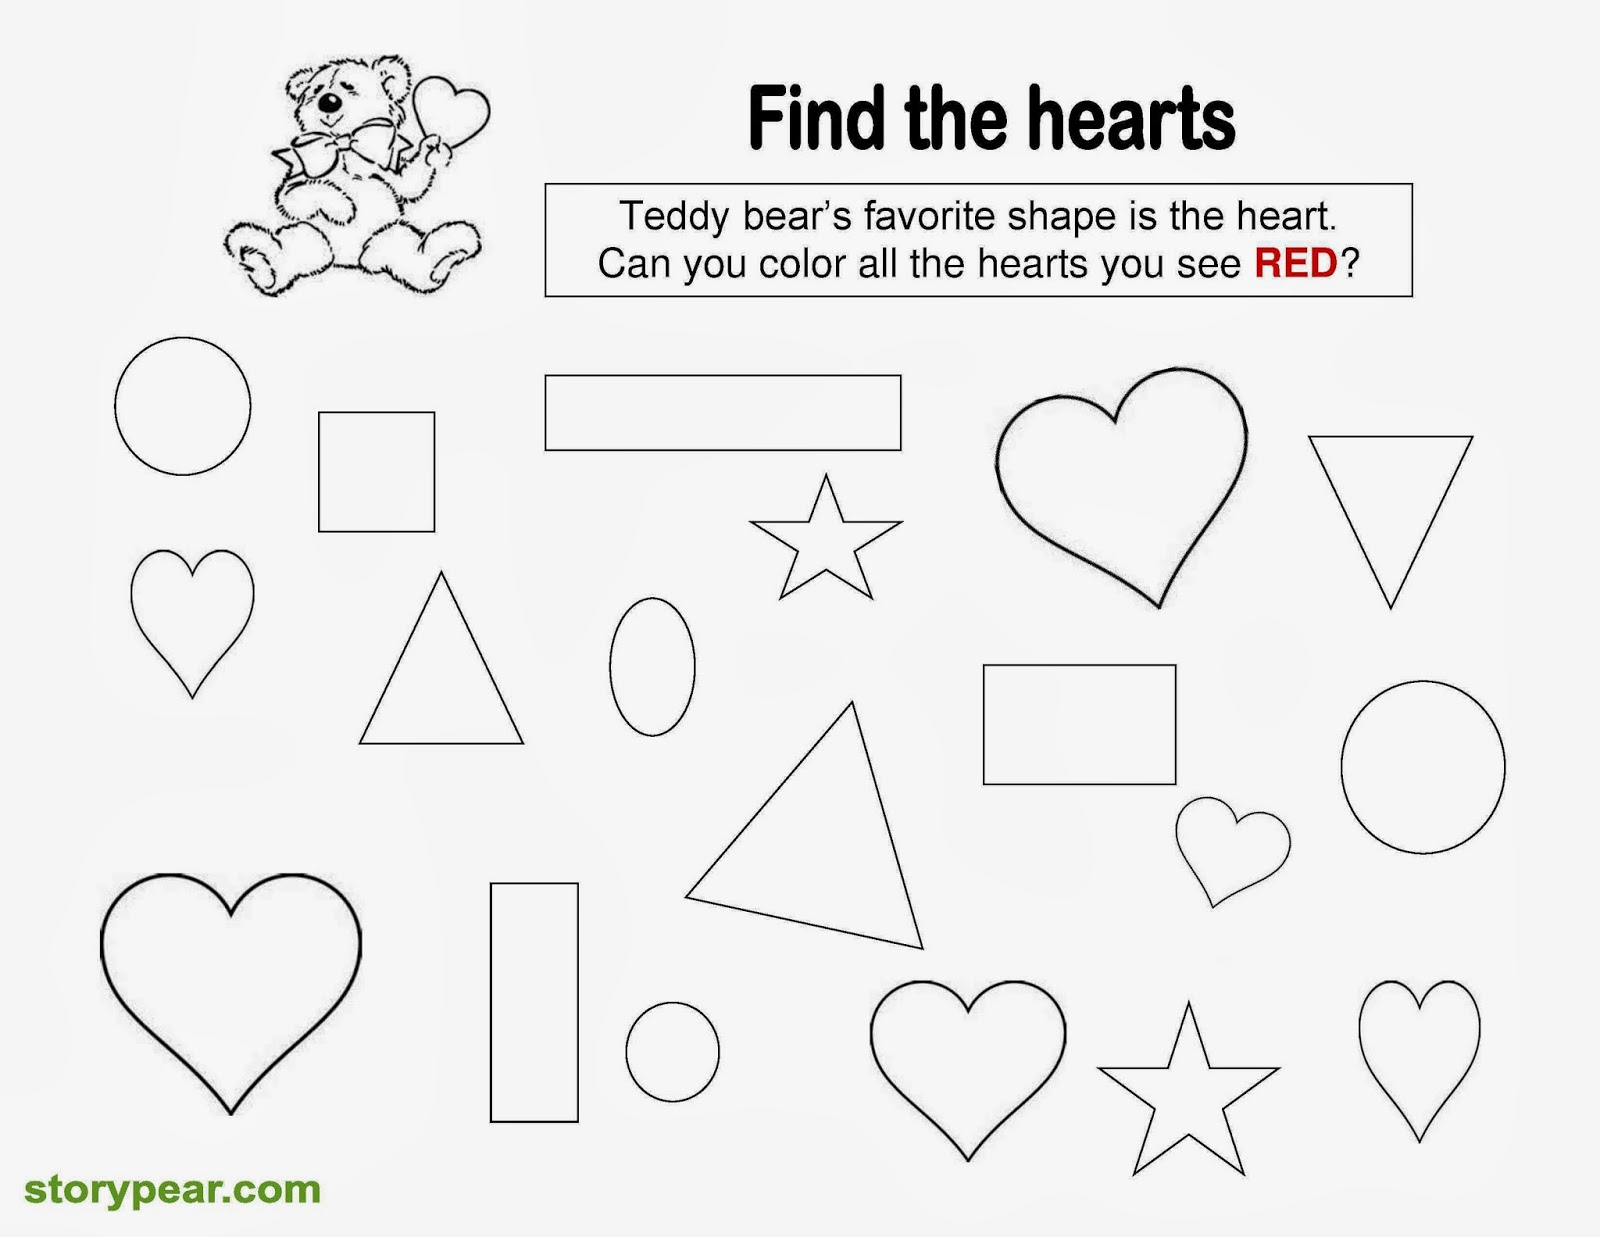 worksheet Color Red Worksheets For Preschool story pear free valentine days printable sheets for preschoolers preschoolers